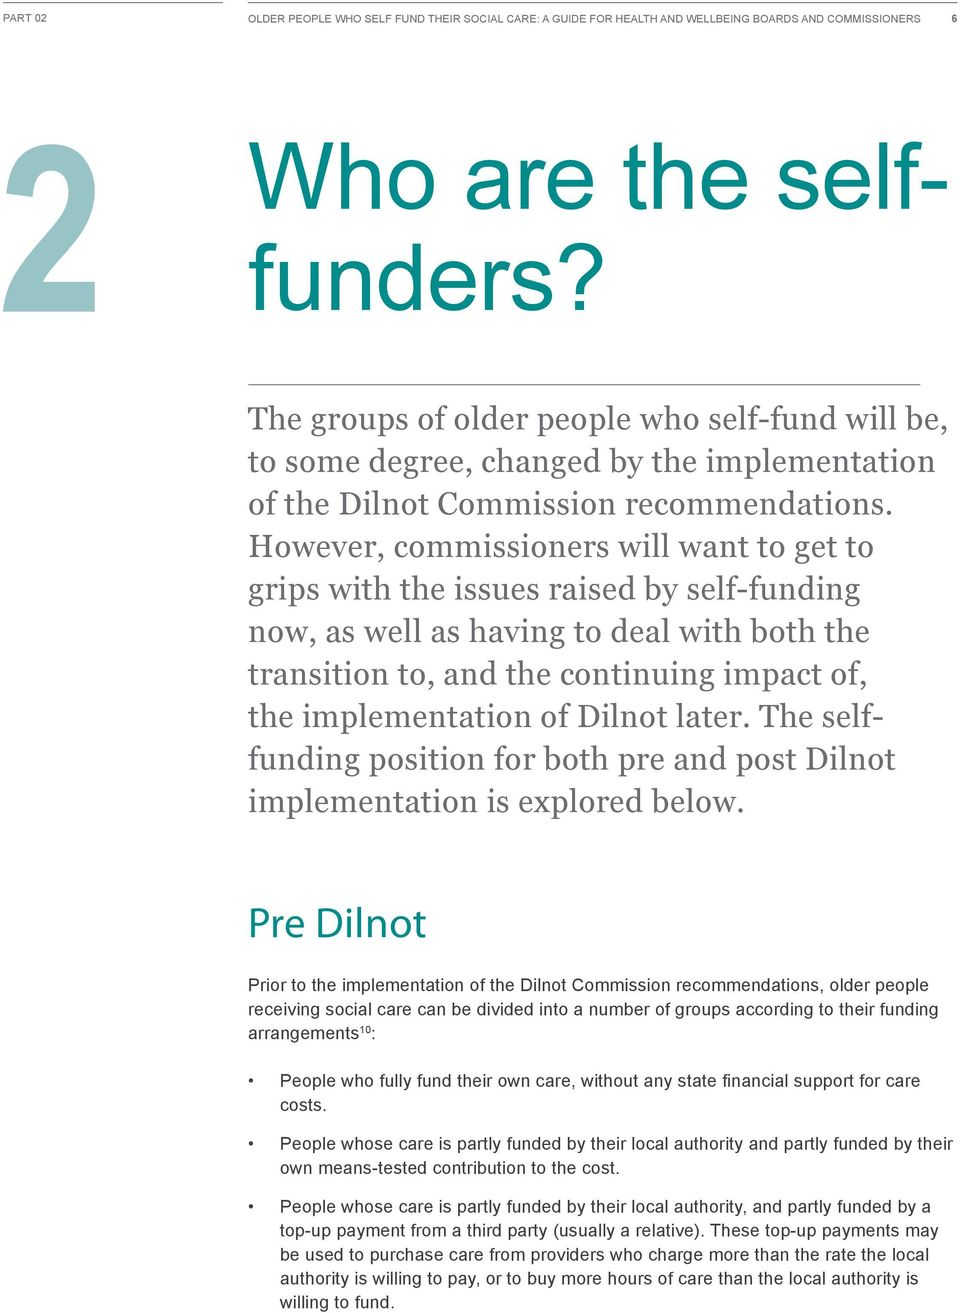 However, commissioners will want to get to grips with the issues raised by self-funding now, as well as having to deal with both the transition to, and the continuing impact of, the implementation of